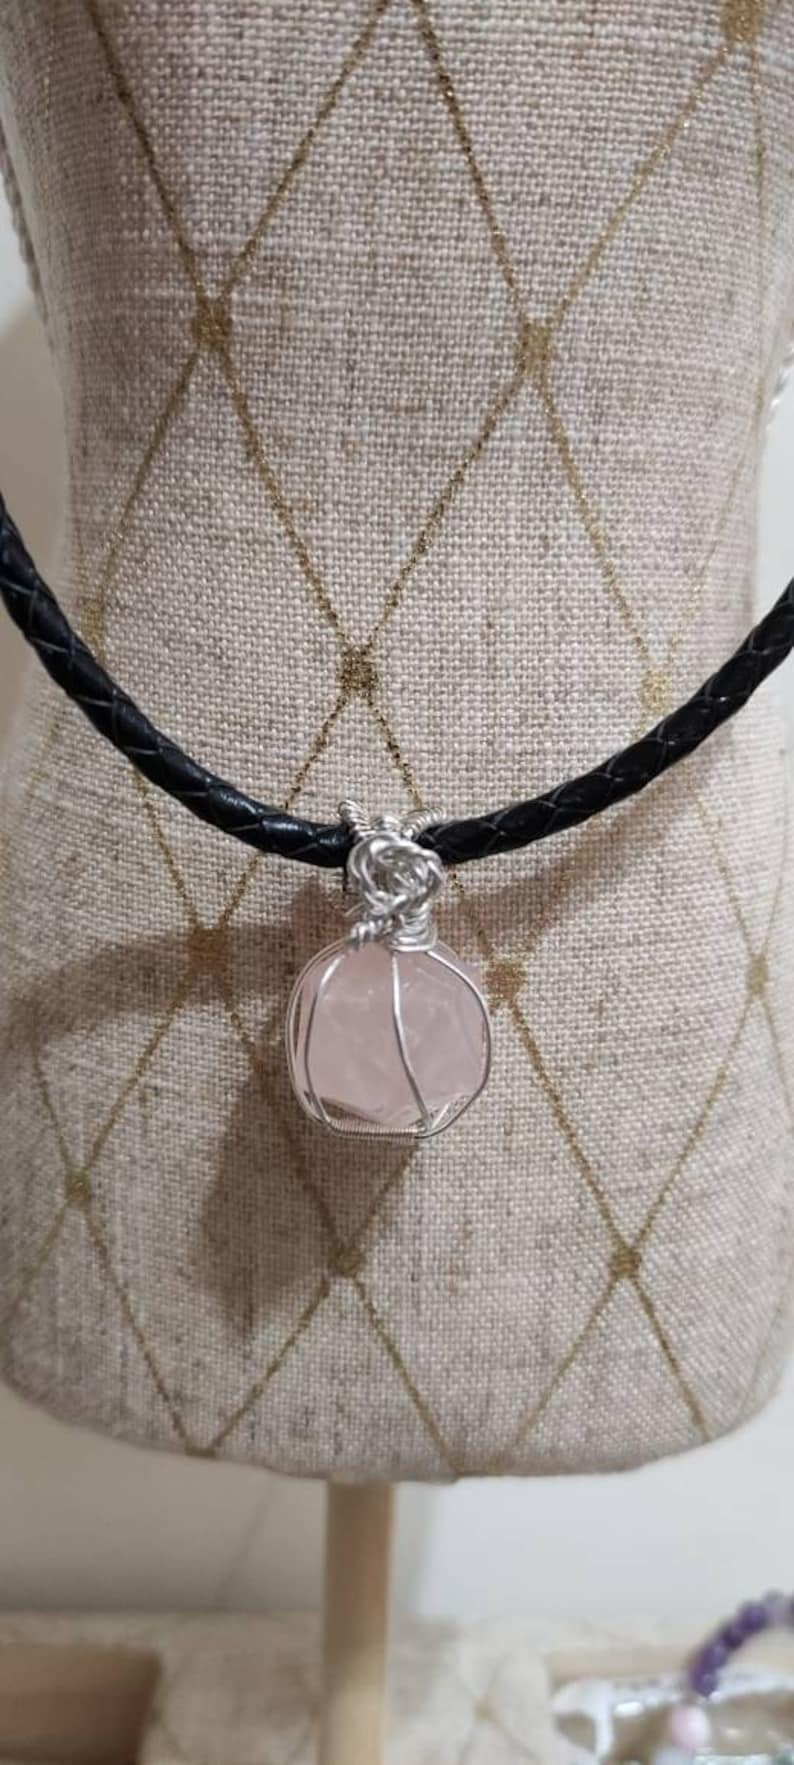 Natural Small Pink Quartz Pendant Set in Nickel and Lead Free Silver Thread 925